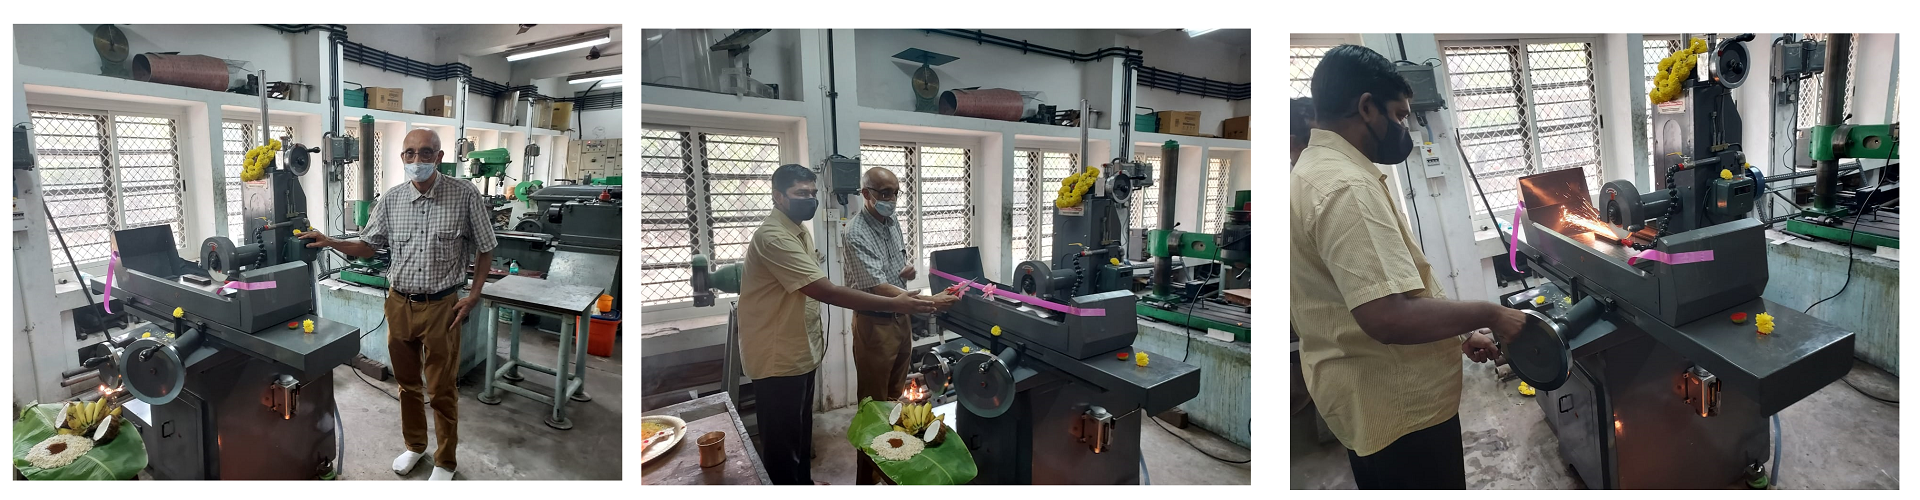 Surface grinding M/C commissioning ceremony in CHL Workshop